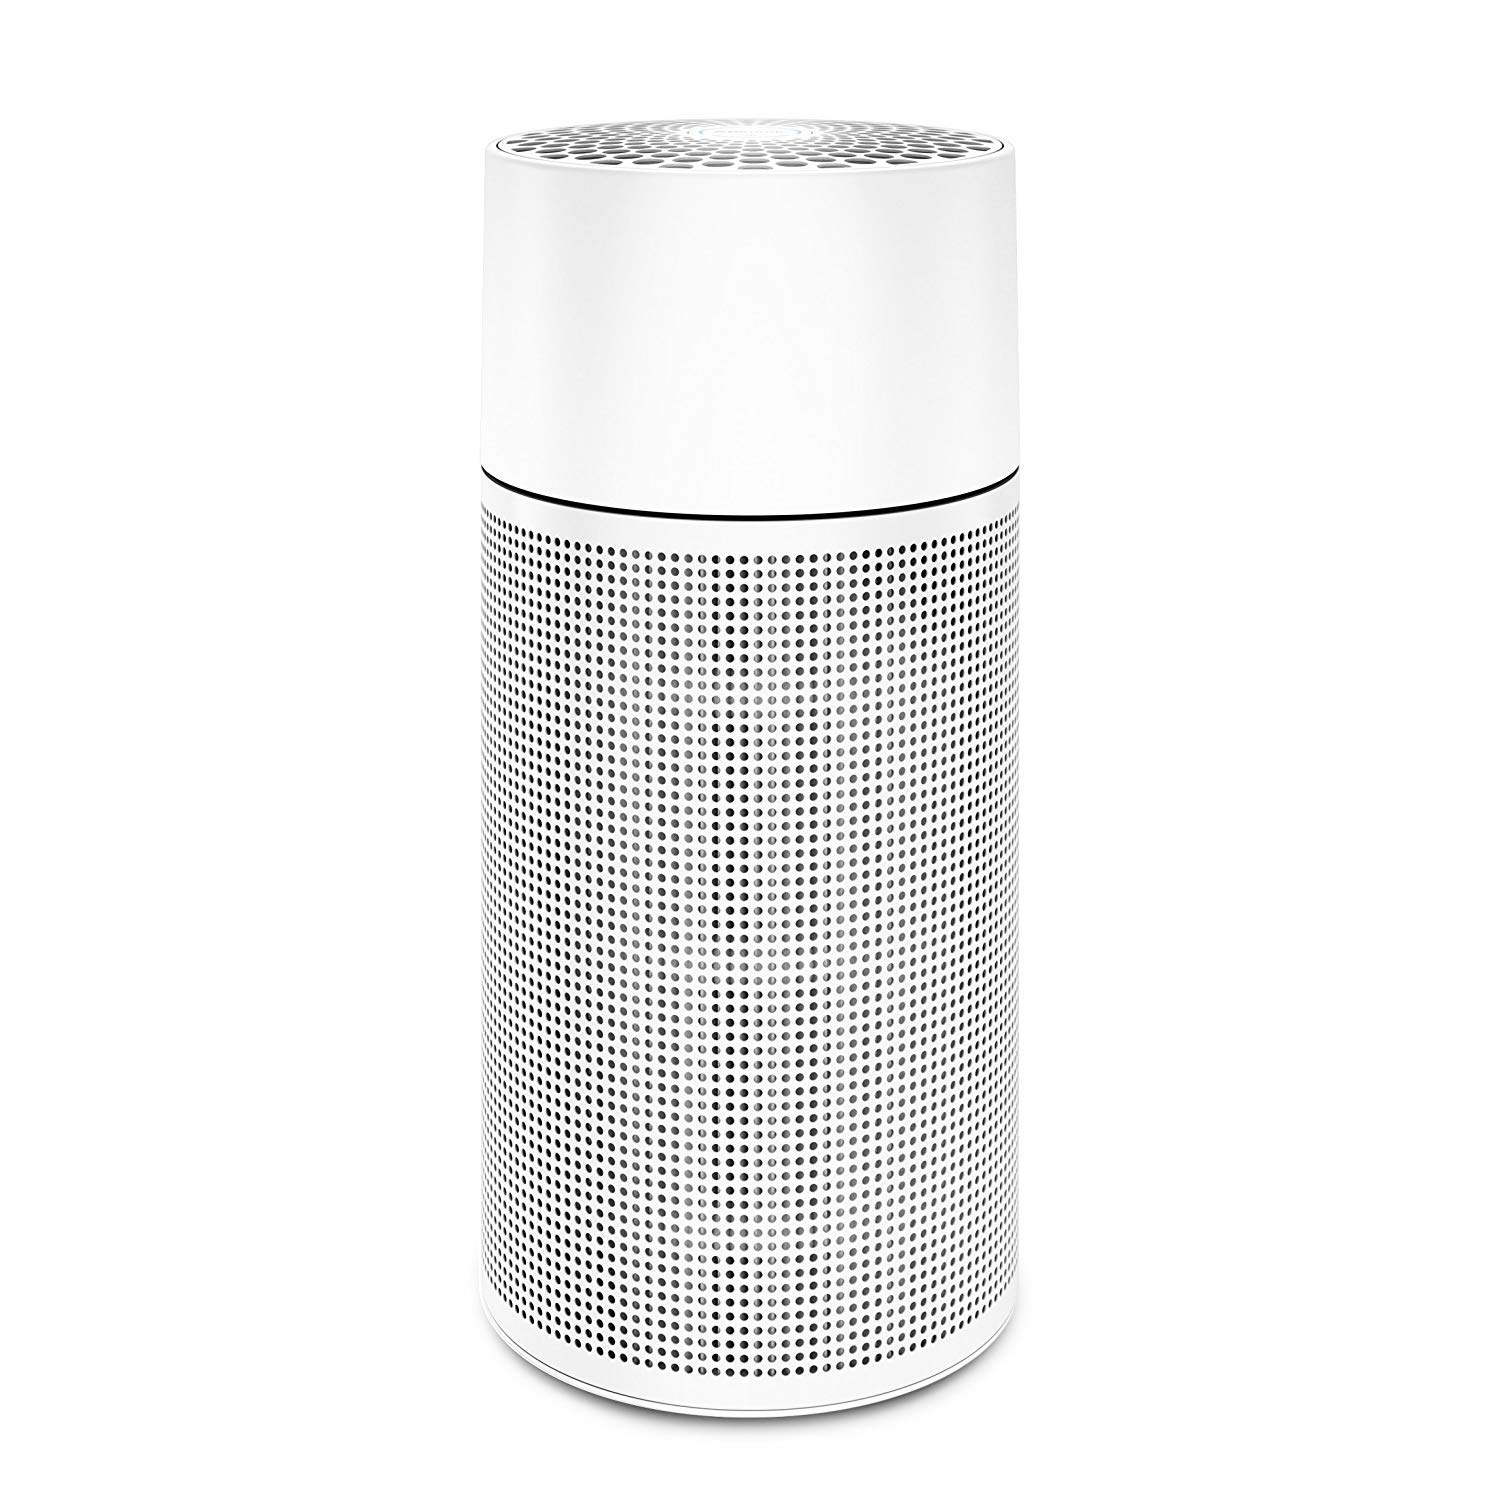 Blueair Joy S Room Air Purifier